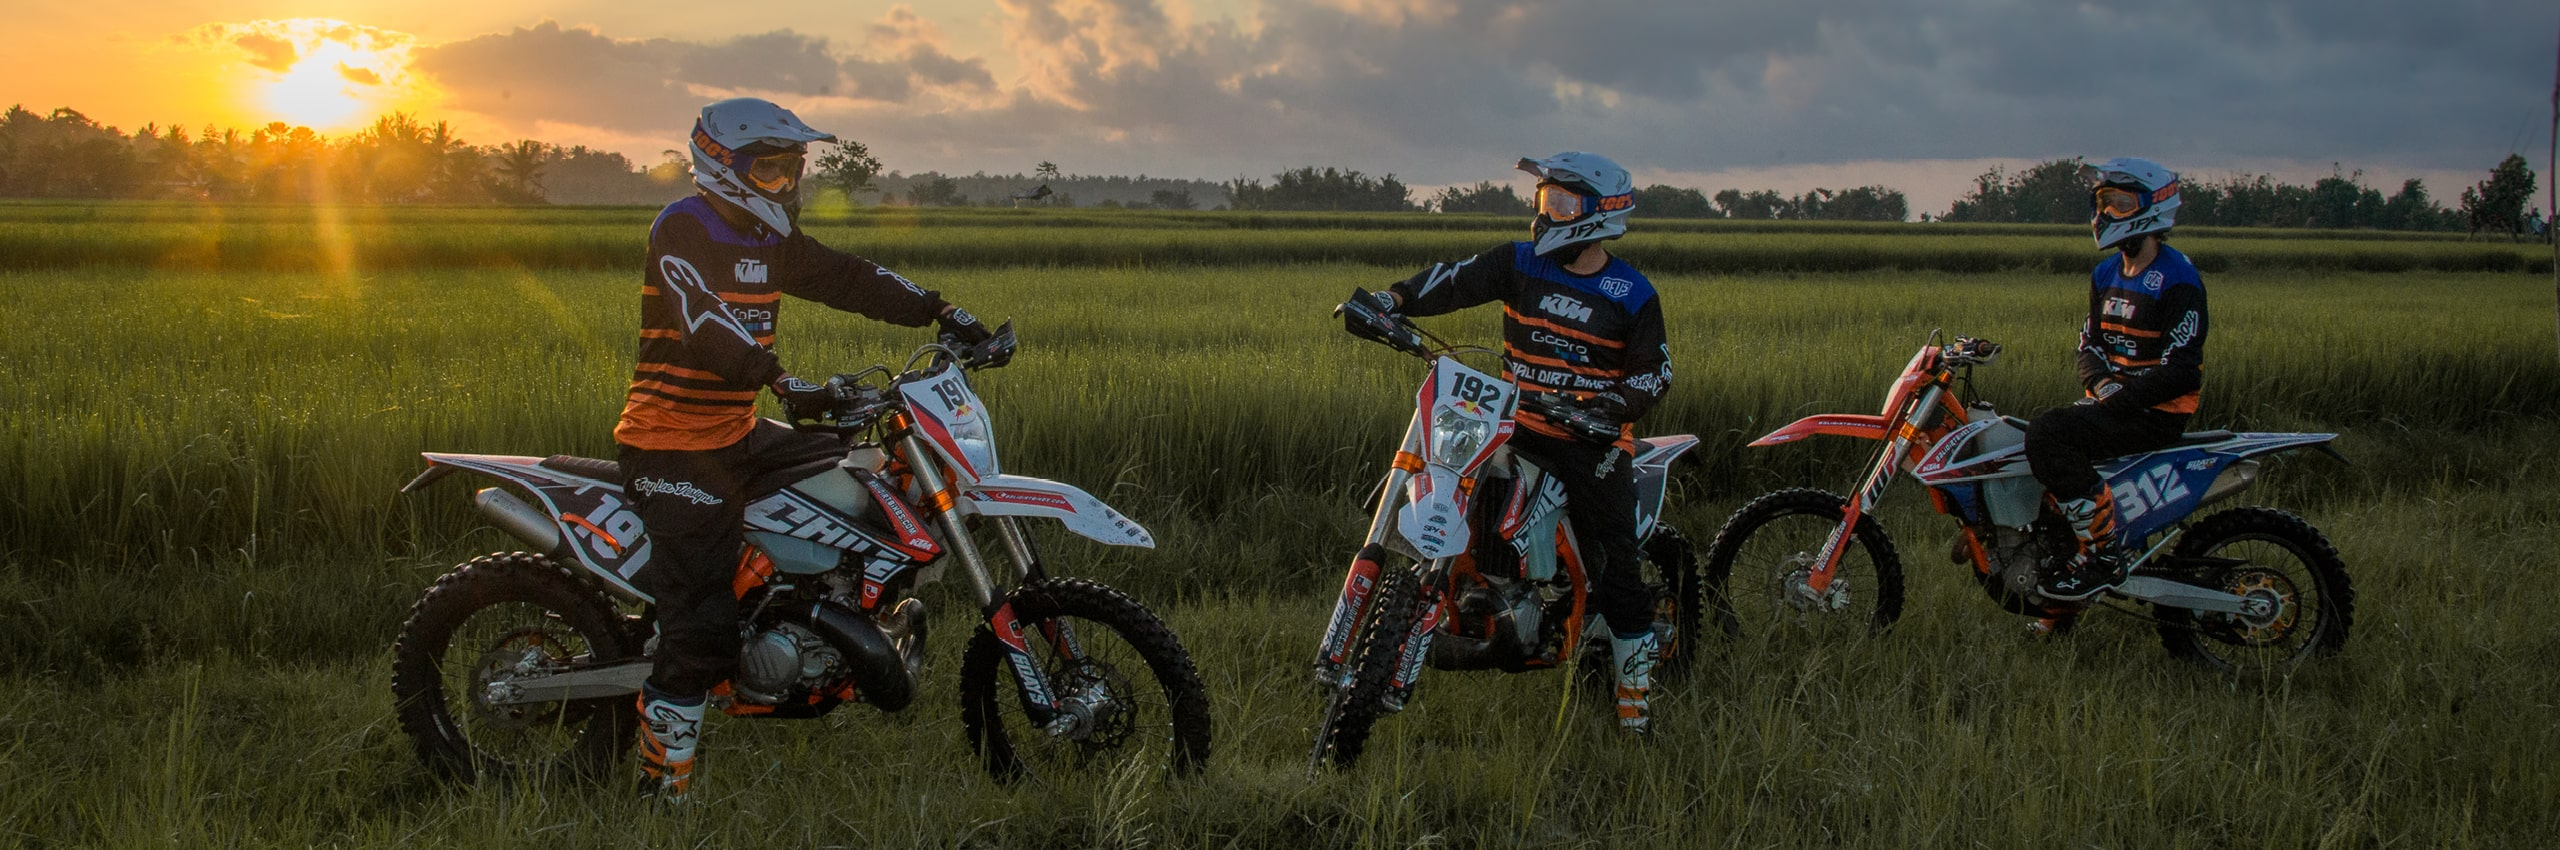 Bali_Dirt_Bikes_Tabanan_Jungle_Slider2